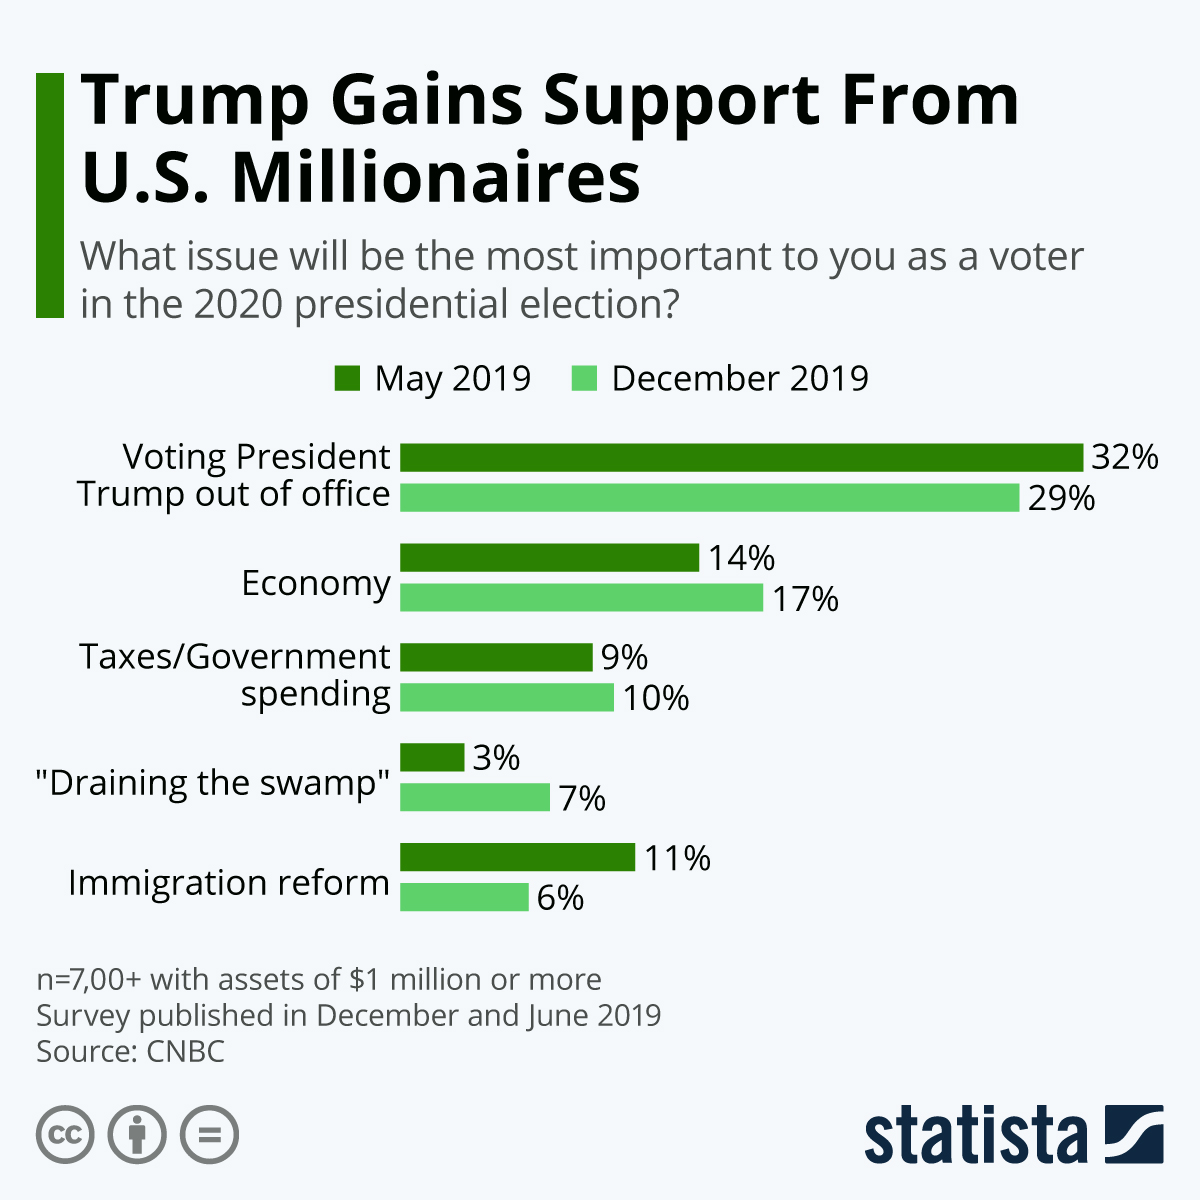 Donald Trump: Favorite Amongst Millionaires?